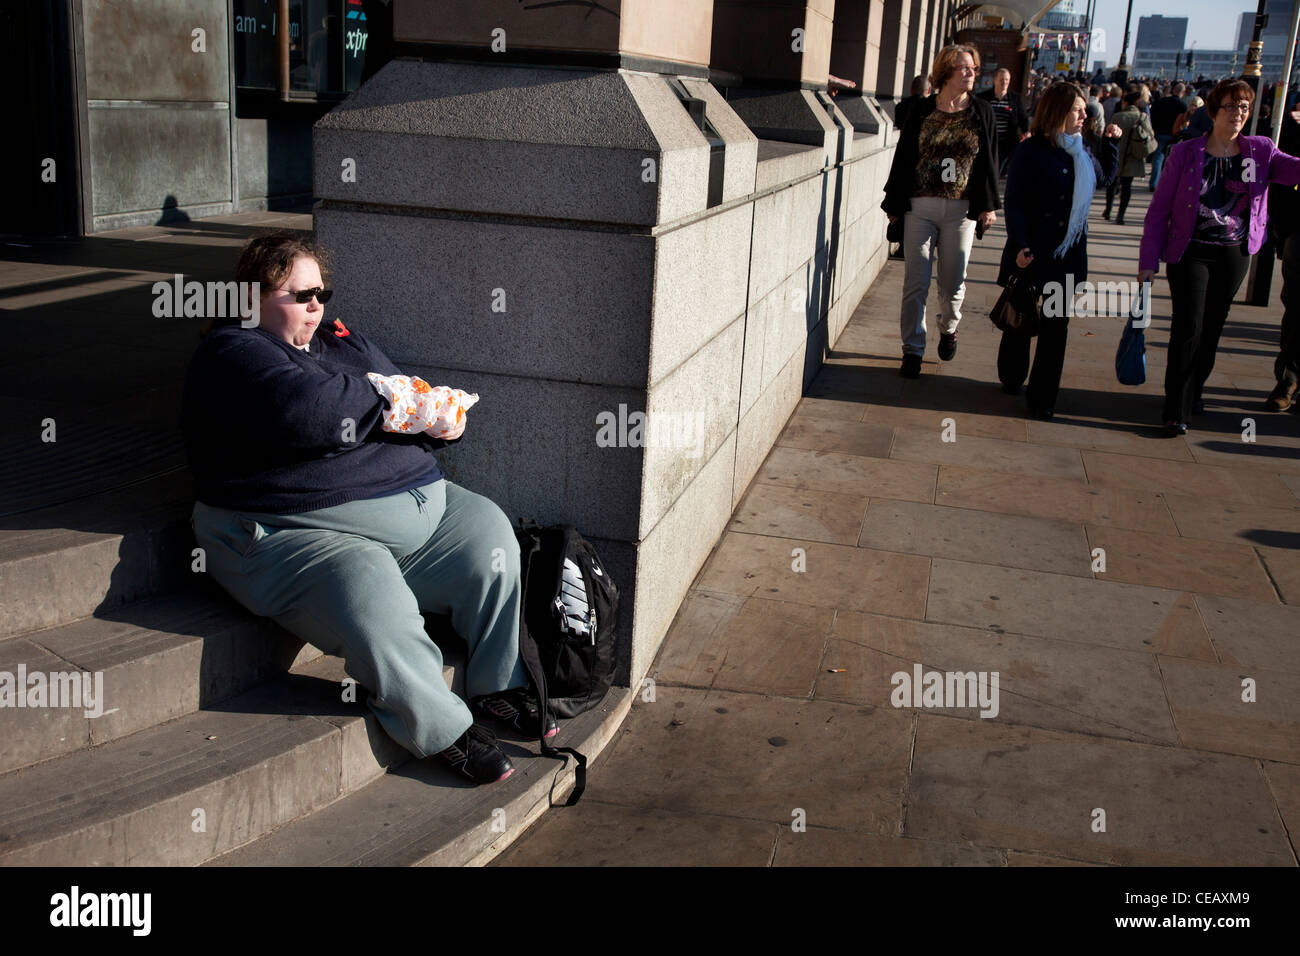 large-woman-sits-eating-fast-food-CEAXM9.jpg